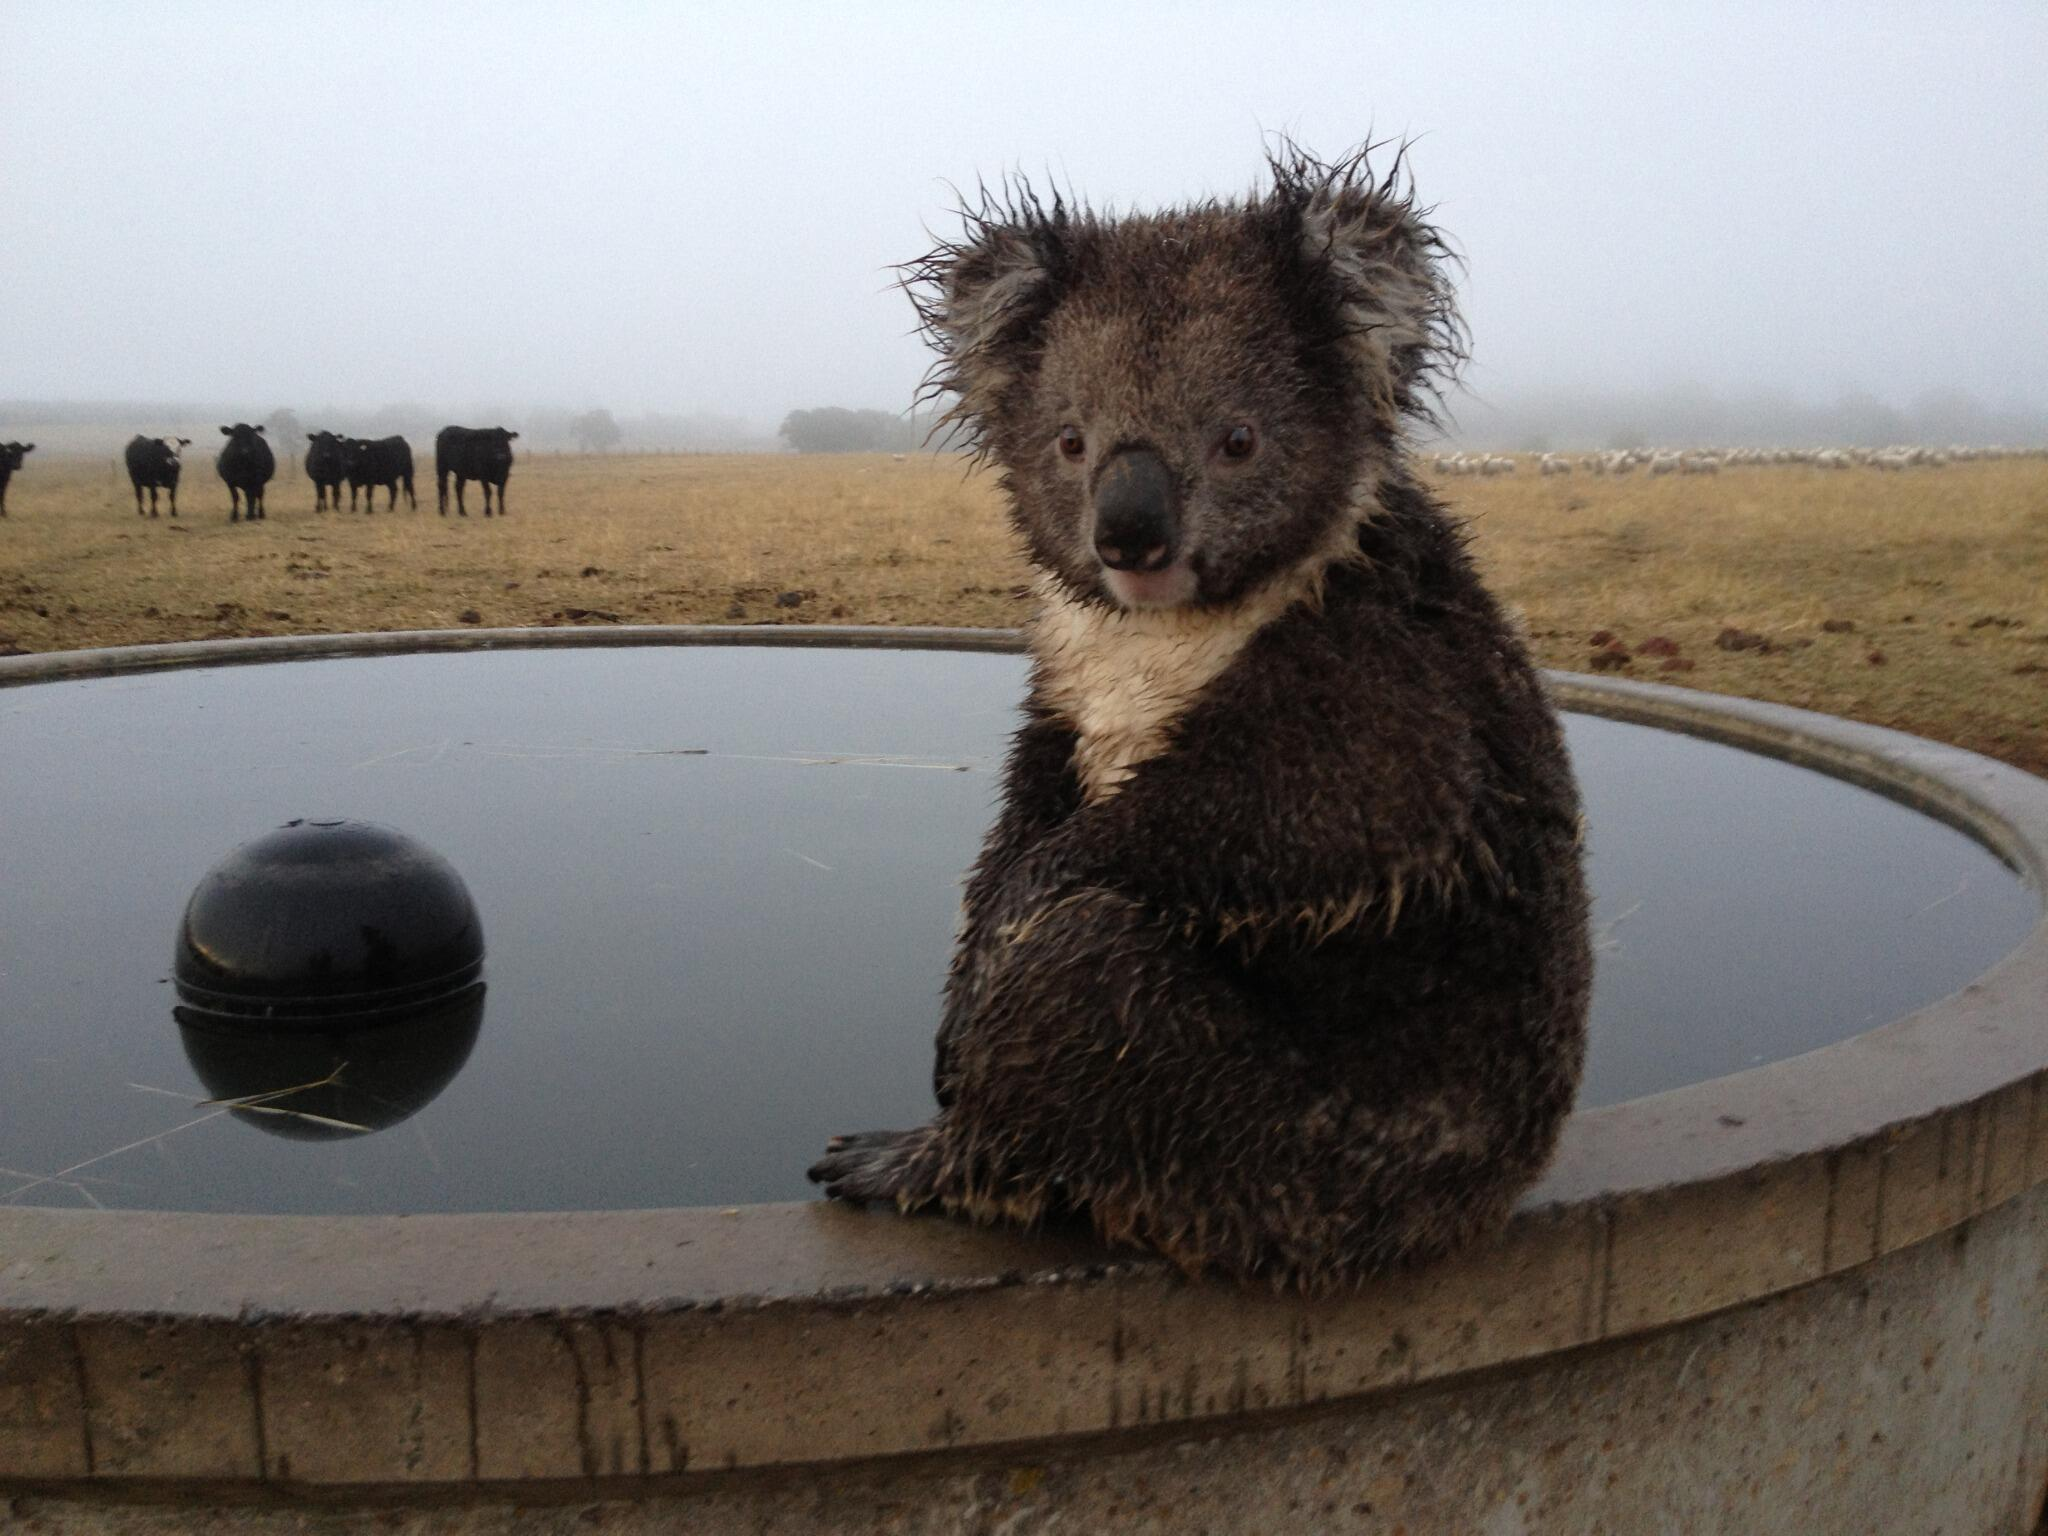 Audience member, and #farmer, Bruce Stephens snapped this #koala taking an early morning dip this week in #Victoria http://t.co/mm7dWNV0g4